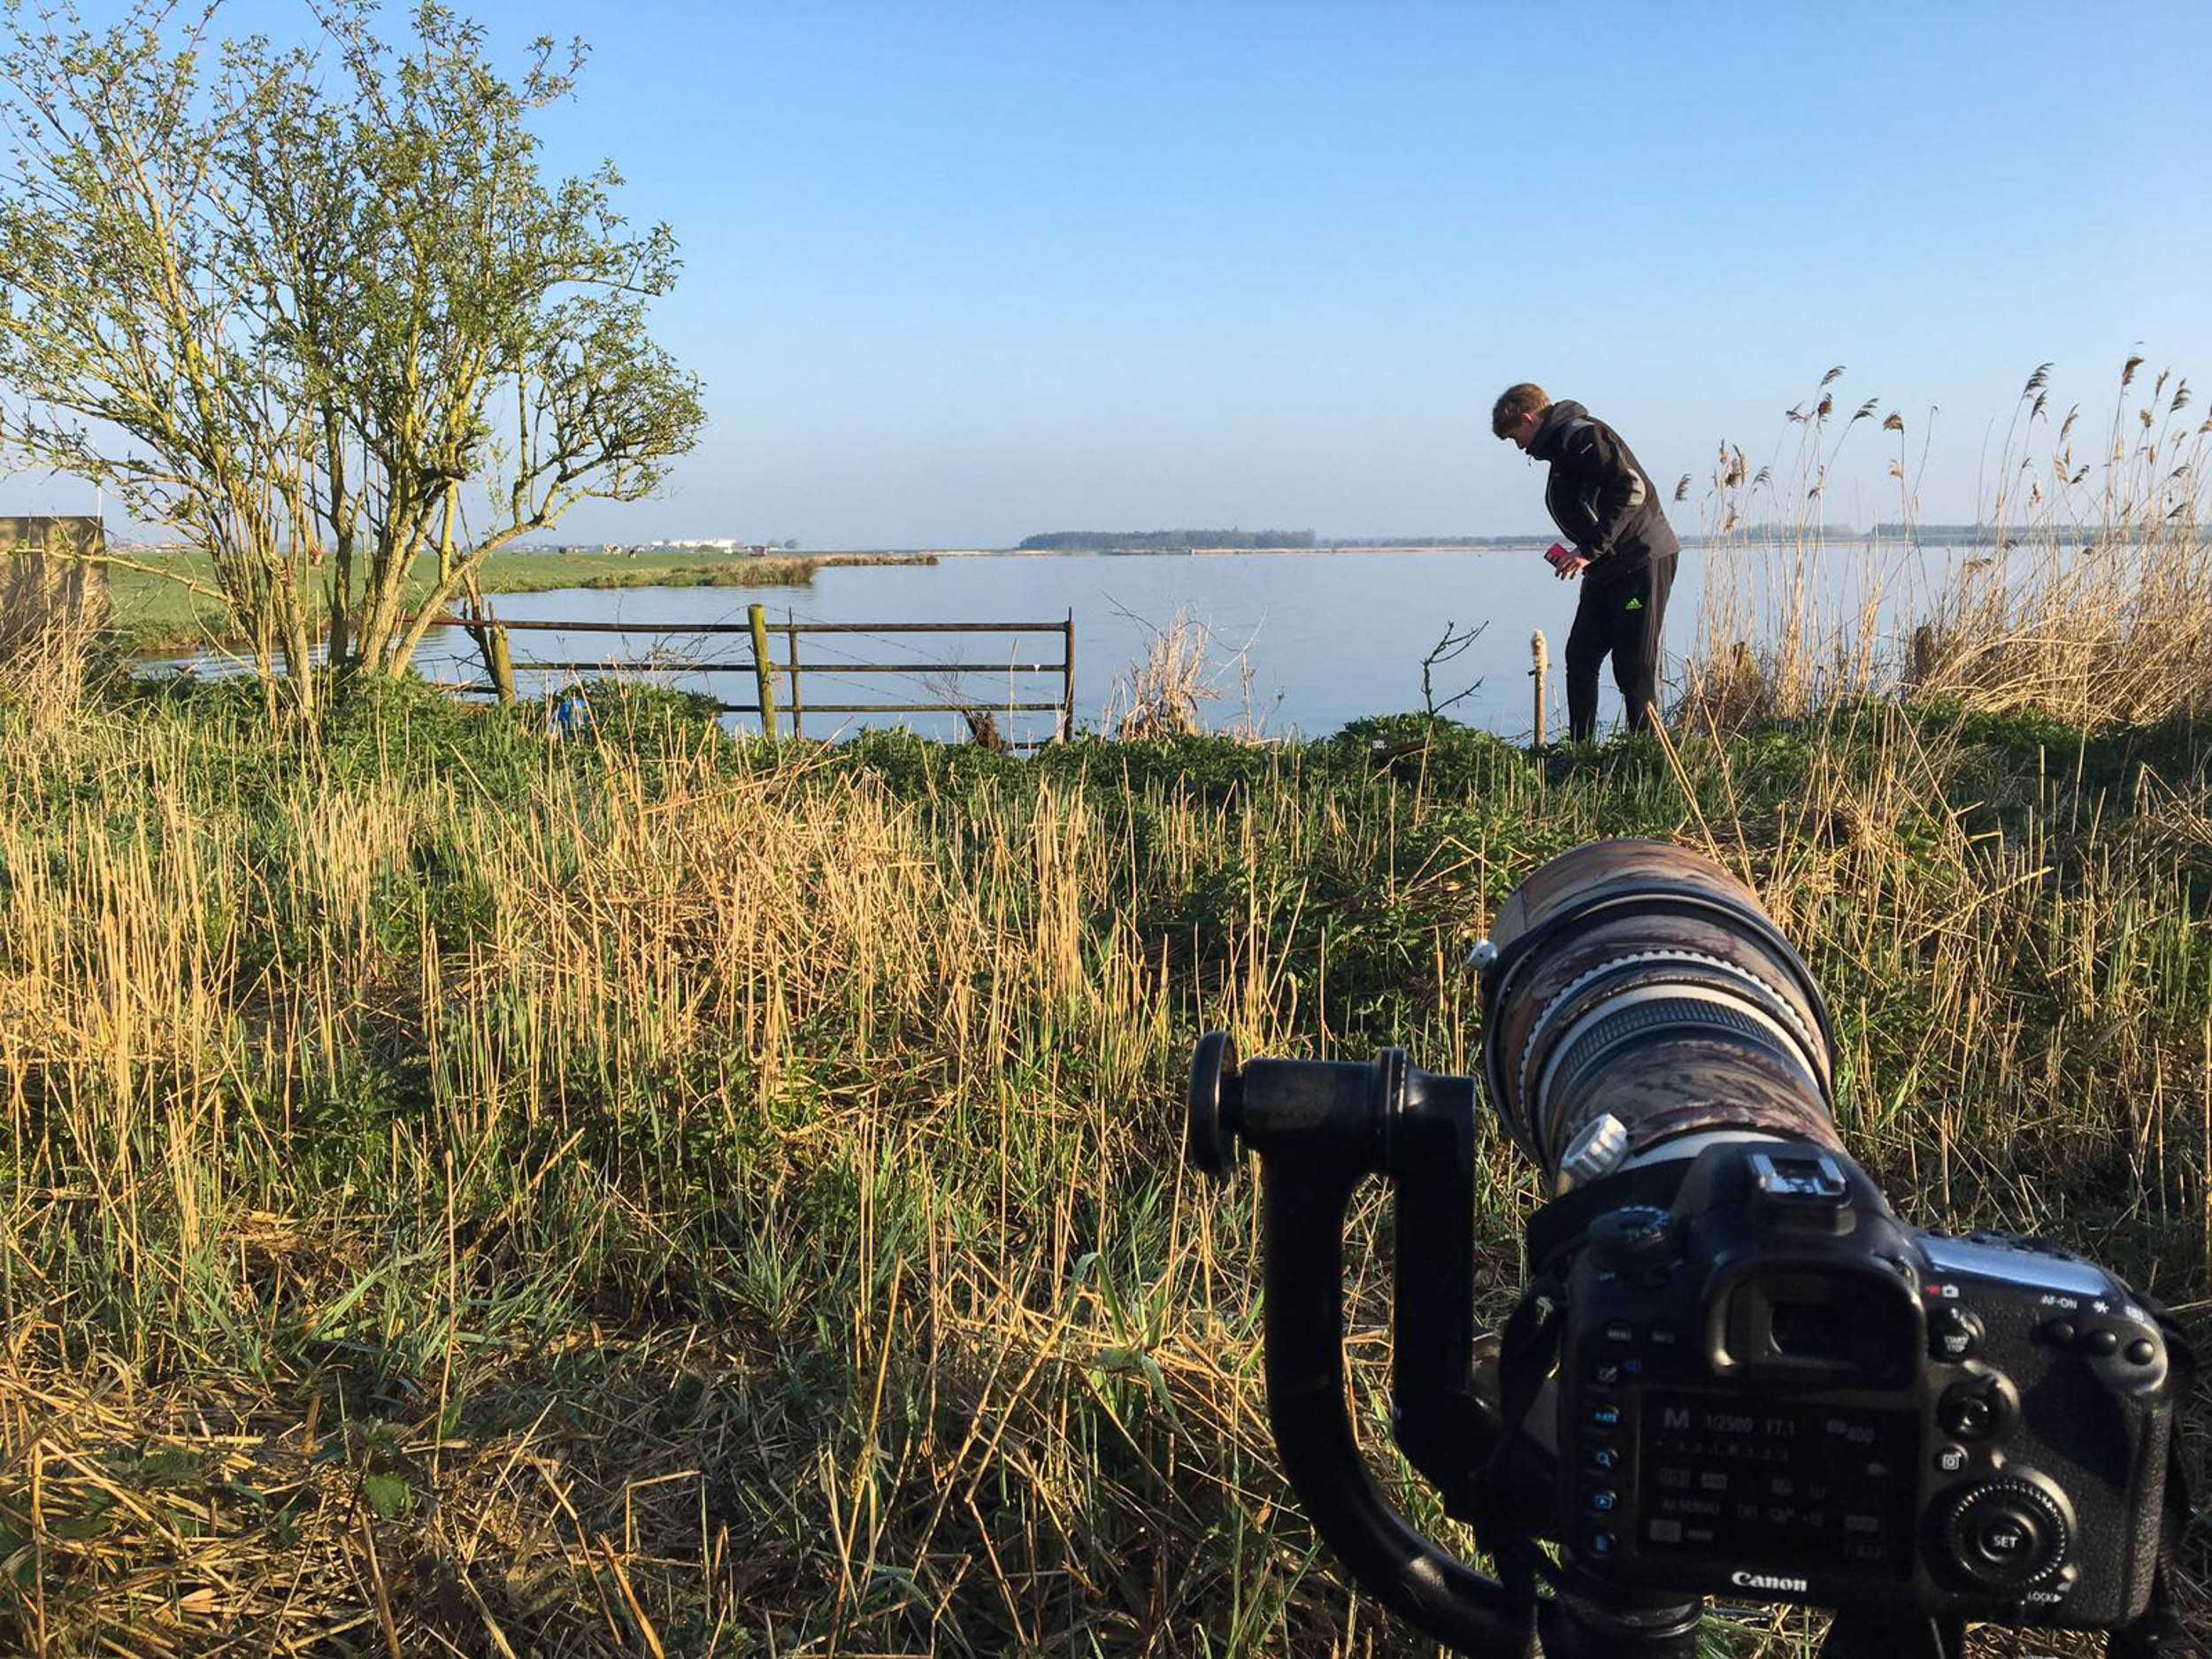 Preparing to photograph bluethroats